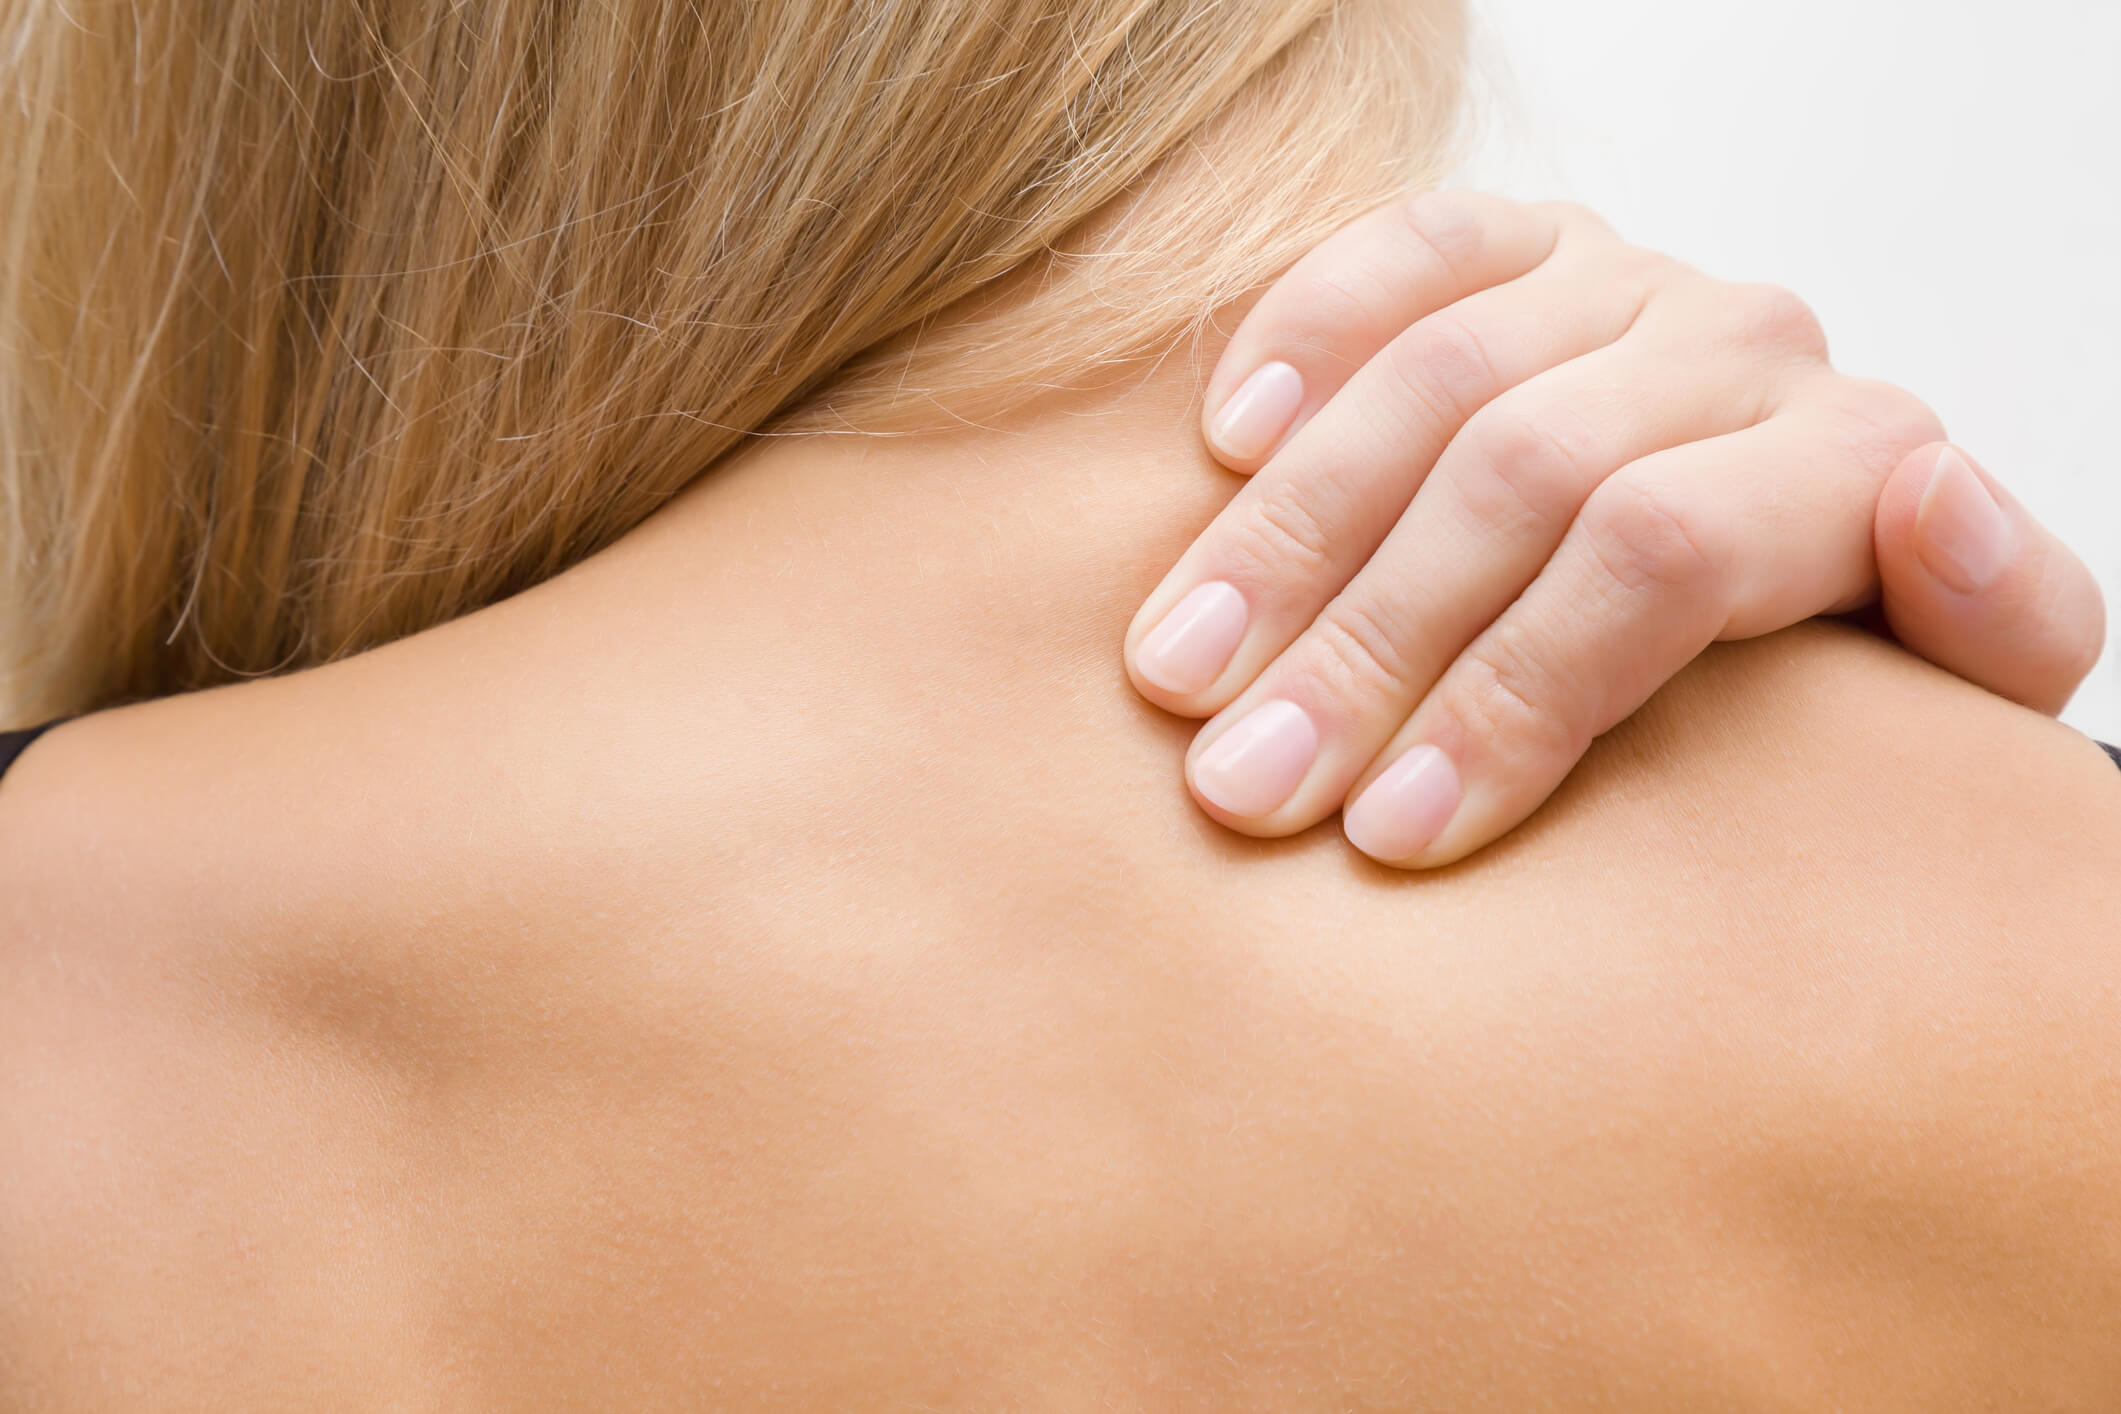 get relief from neck pain with our expert chiropractors in midland michigan